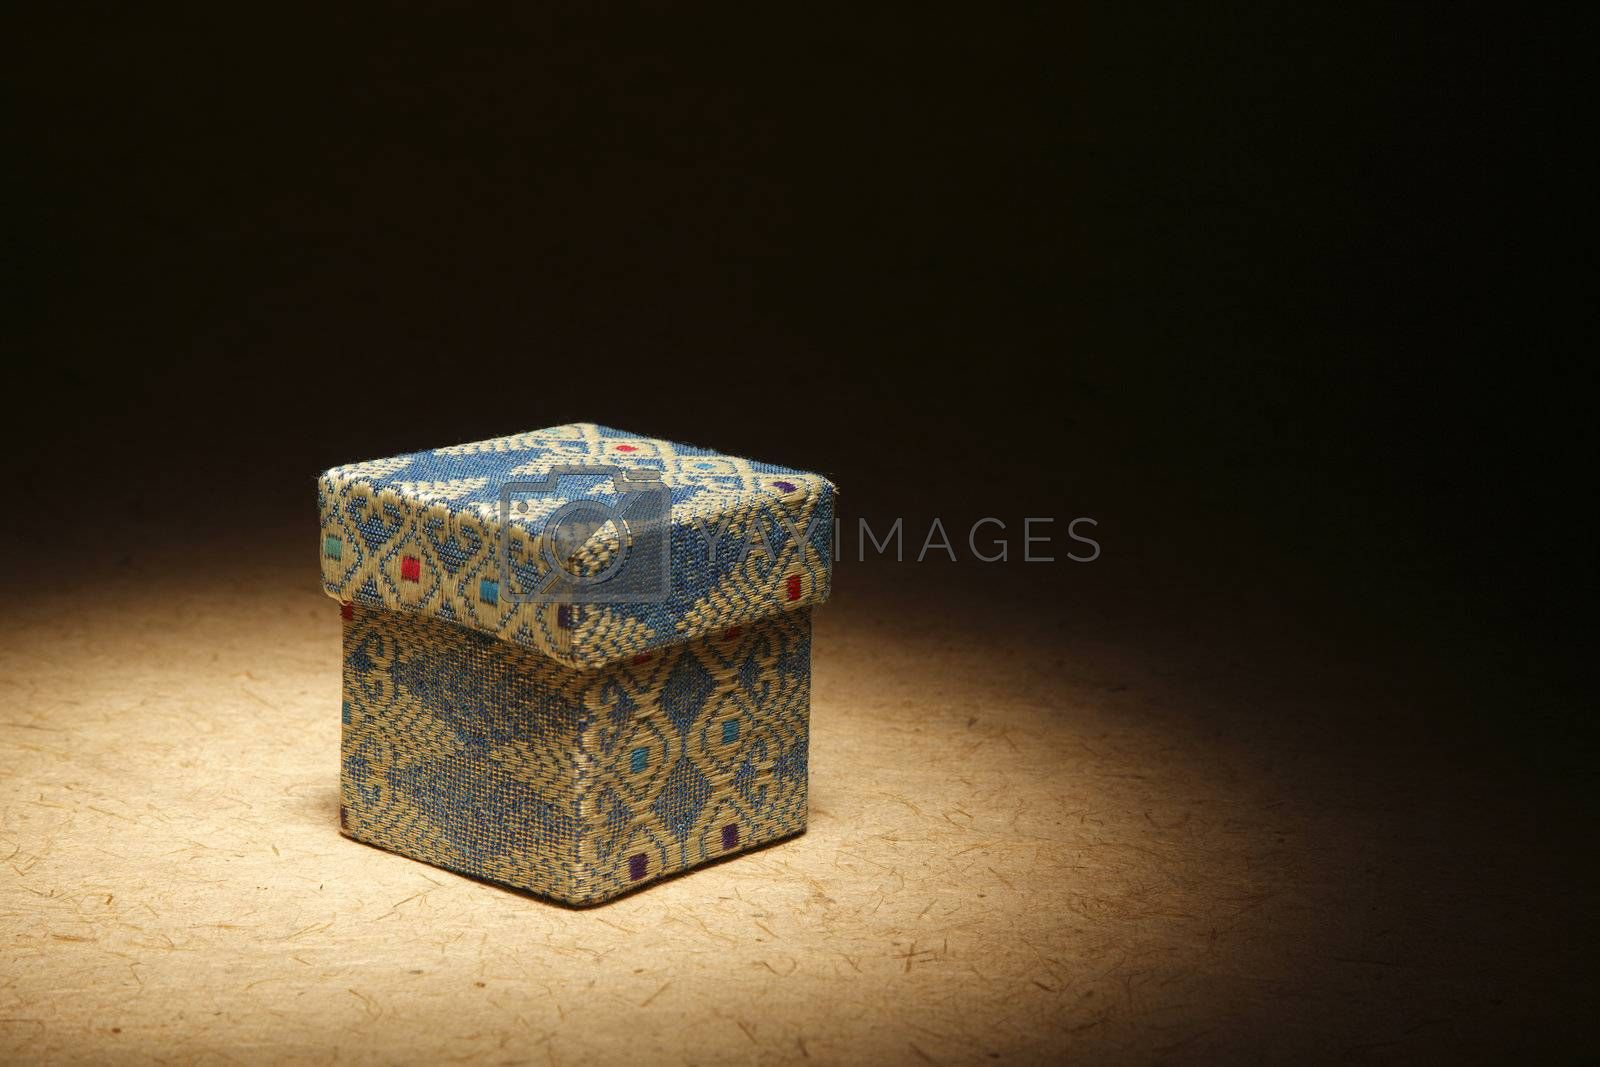 asiian design of the gift box on the brown background